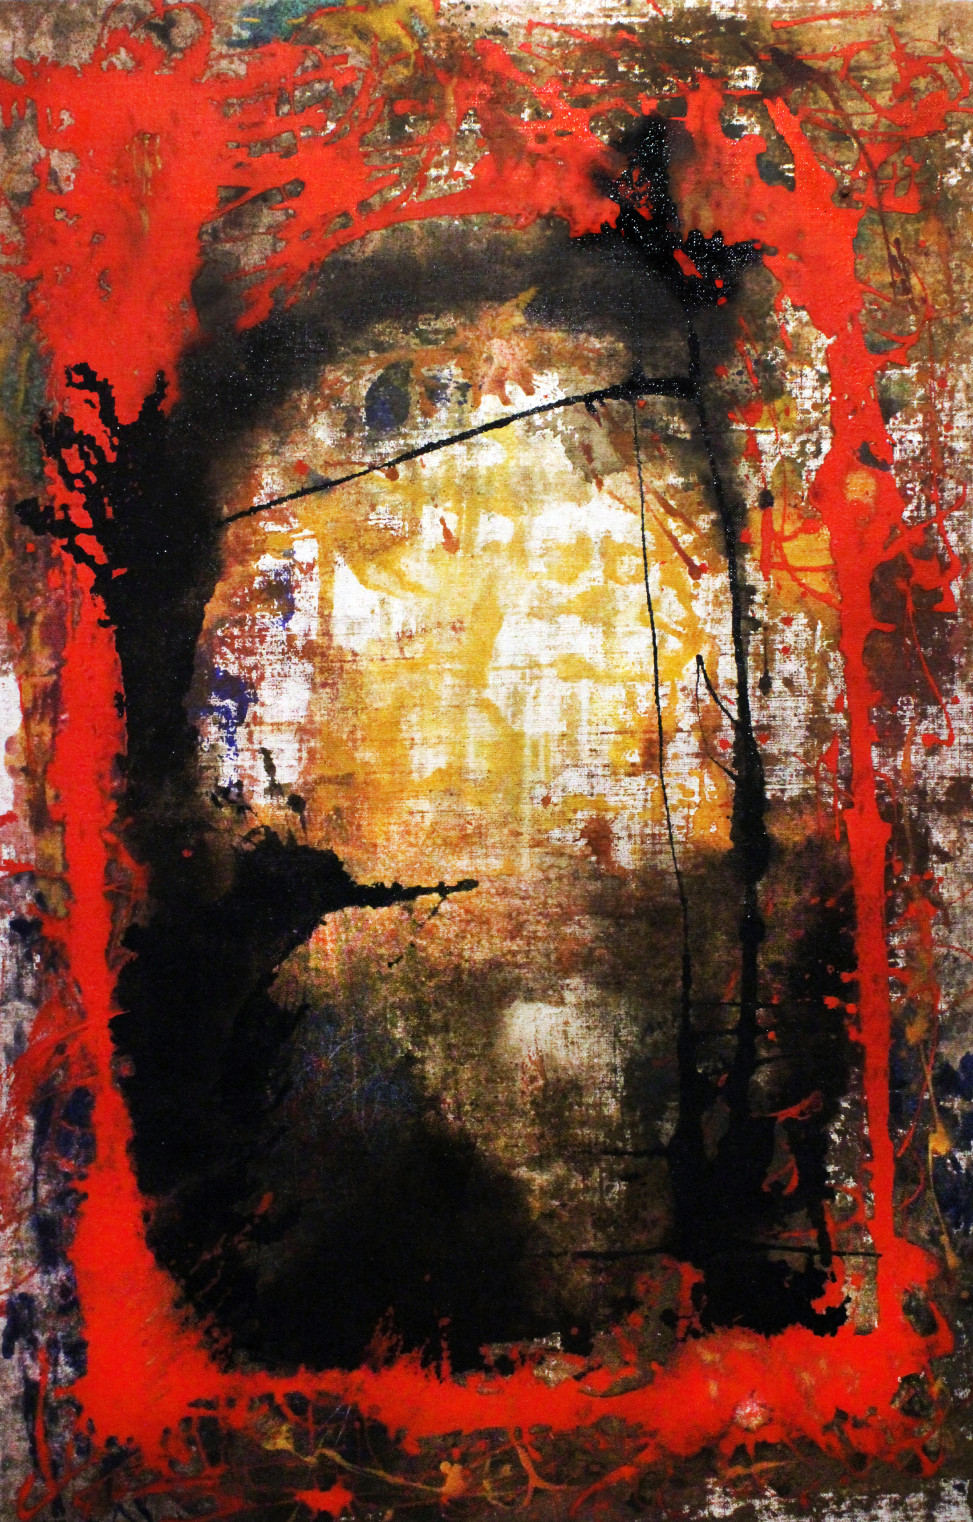 2015, Red Cage, mixed technique on canvas